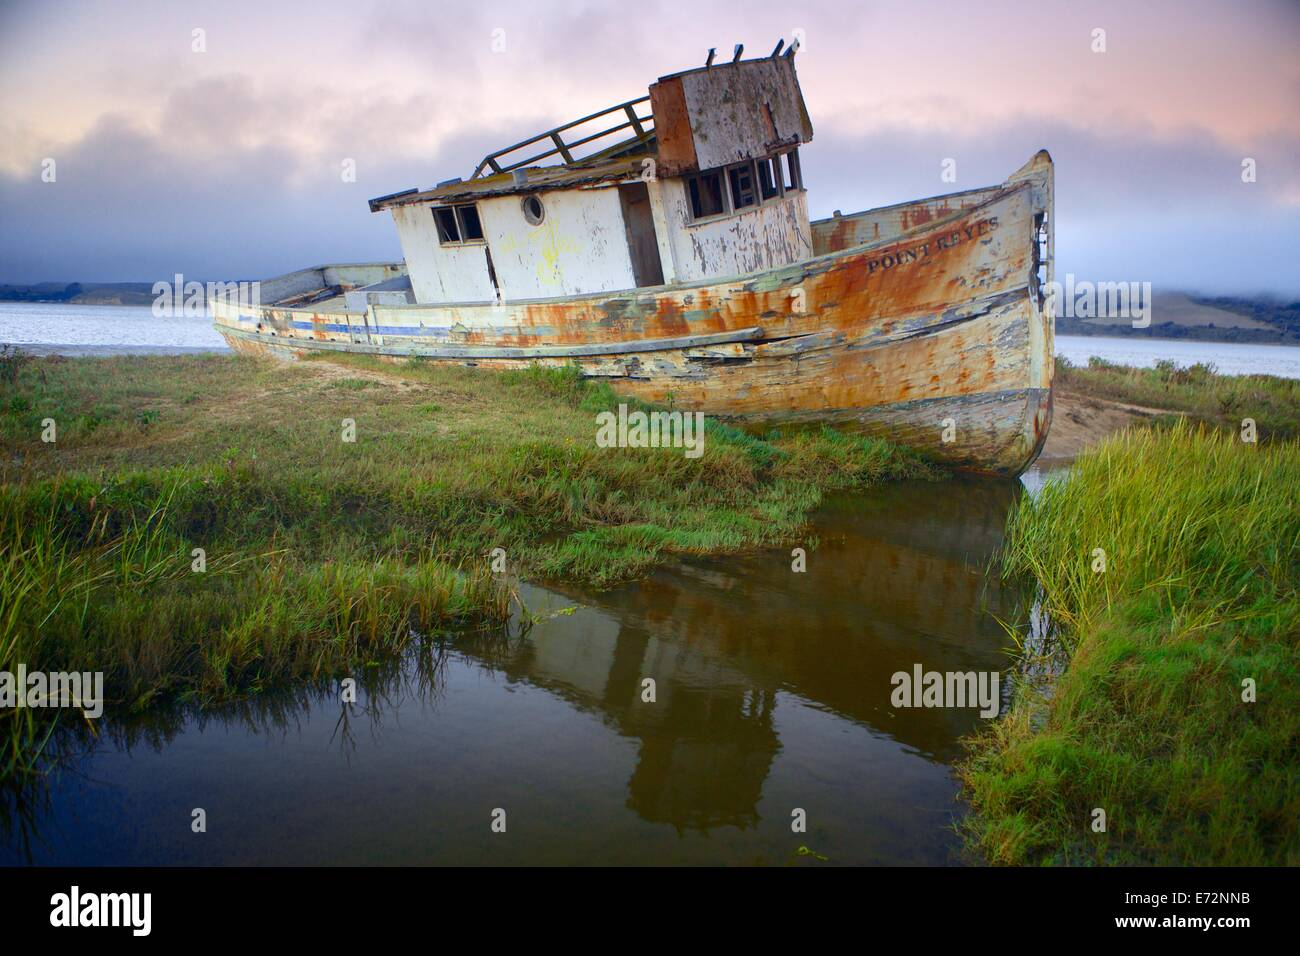 The Point Reyes has seen more seaworthy days, but she is still a beauty. Taken at sunset with beautiful low fog. - Stock Image